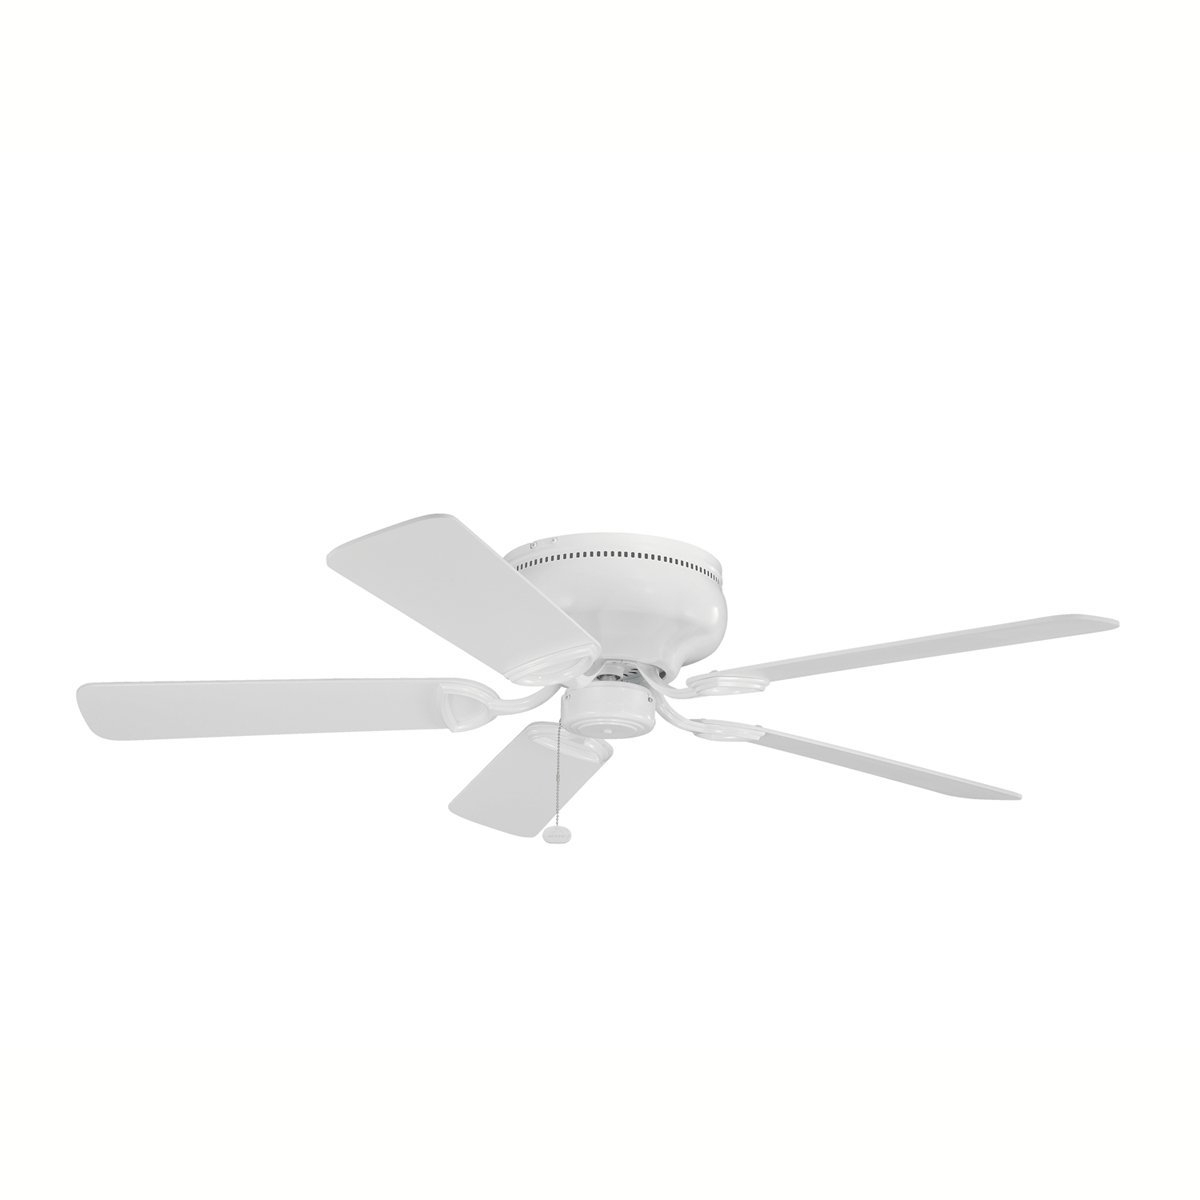 Flush Mount Ceiling Fans Without Lights Big Outdoor Ceiling Fan With Regarding 2019 Flush Mount Outdoor Ceiling Fans (View 4 of 20)